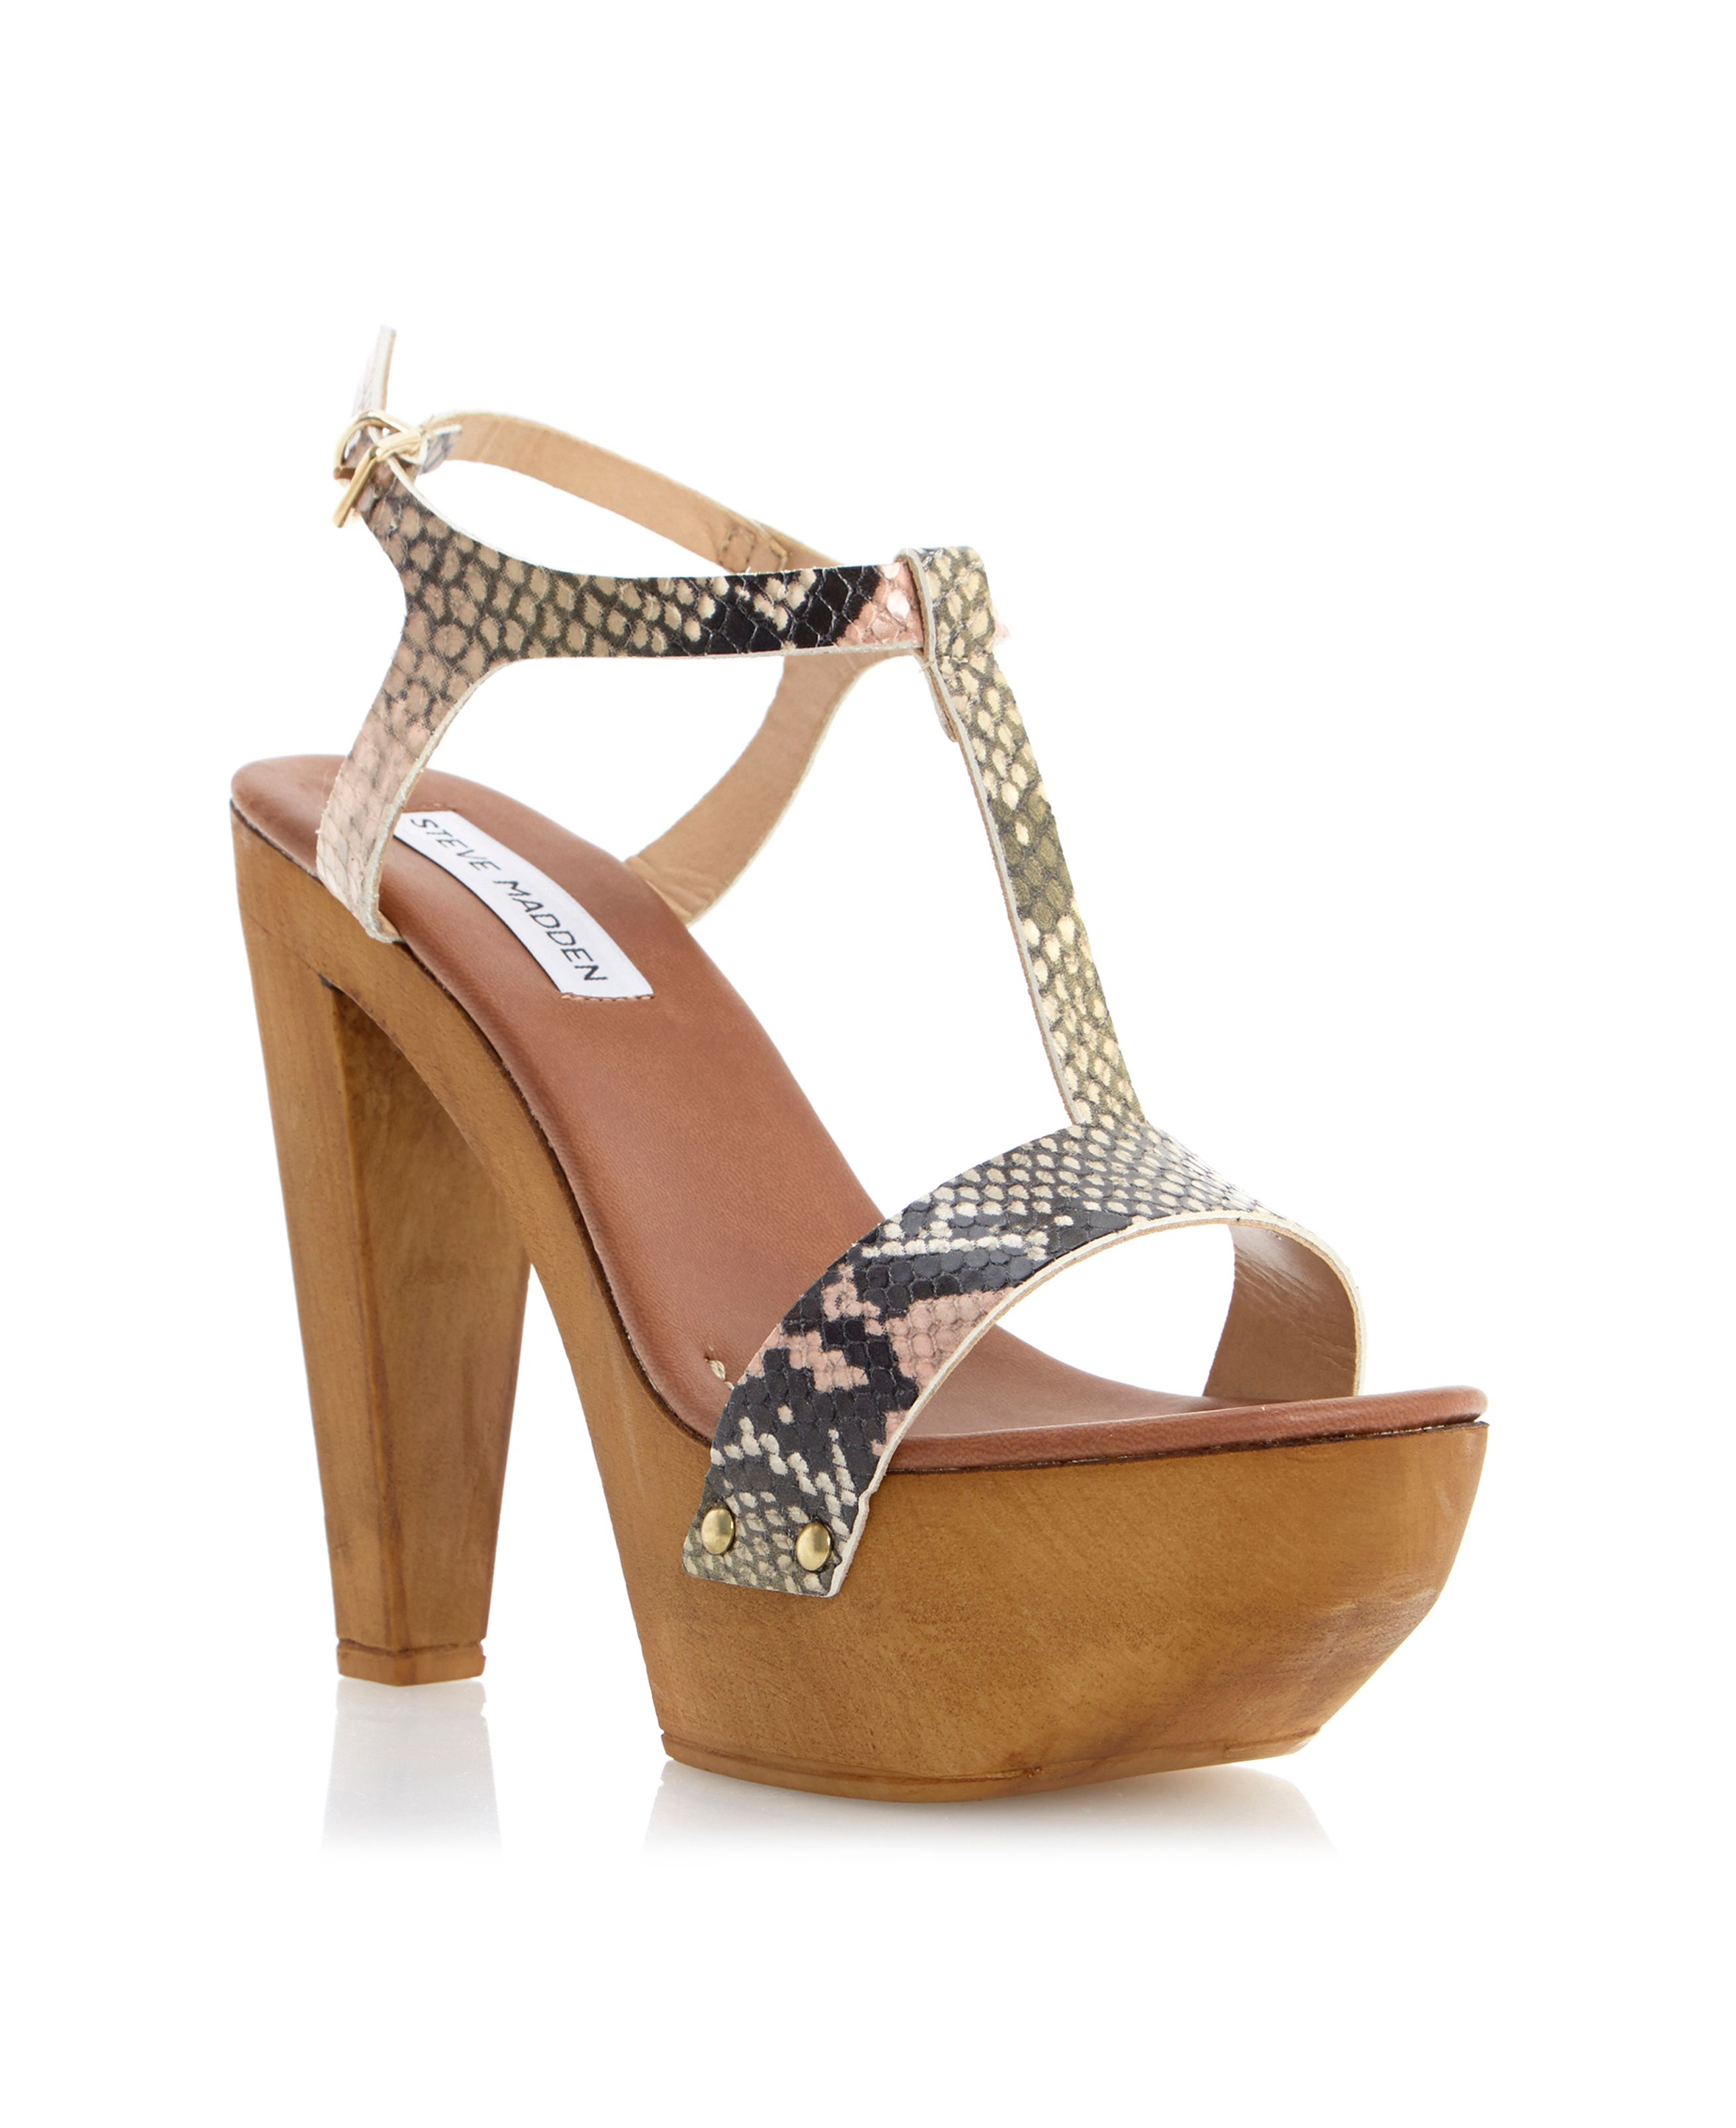 Ownit leather block heel buckle sandals